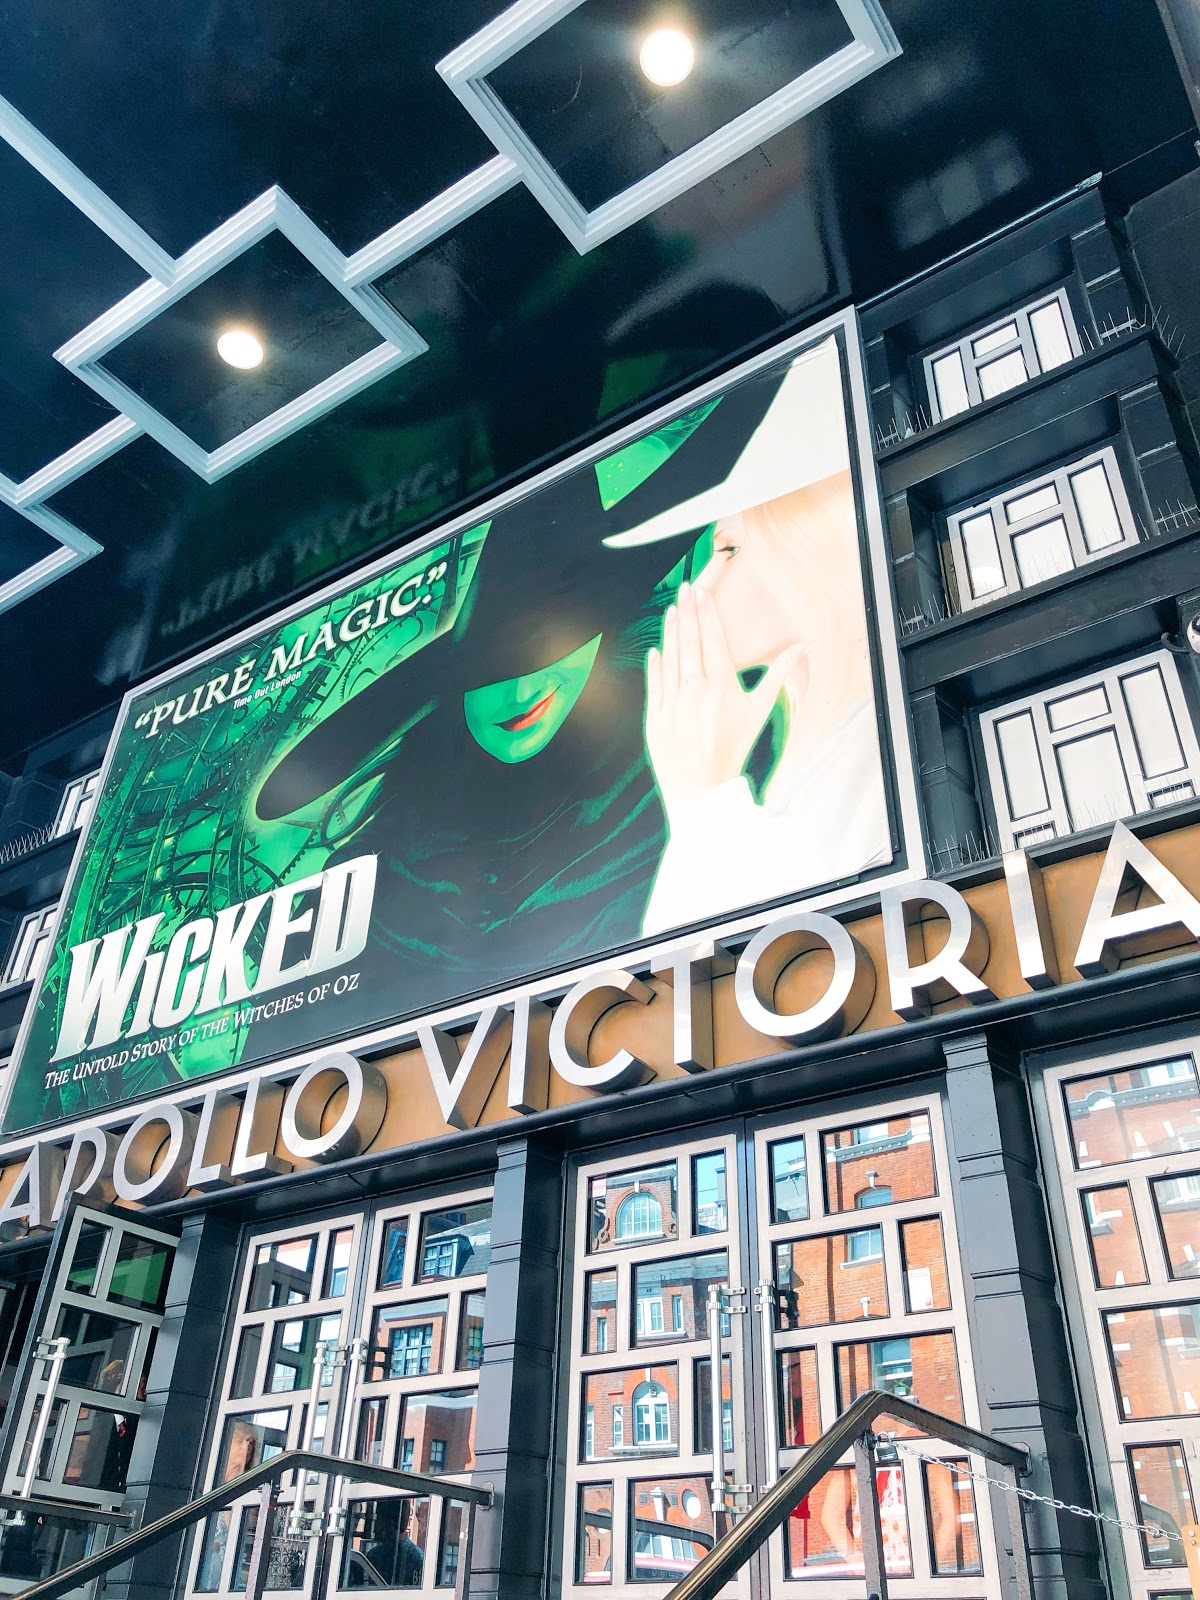 wicked London theatre show, leicester square discounted theatre tickets